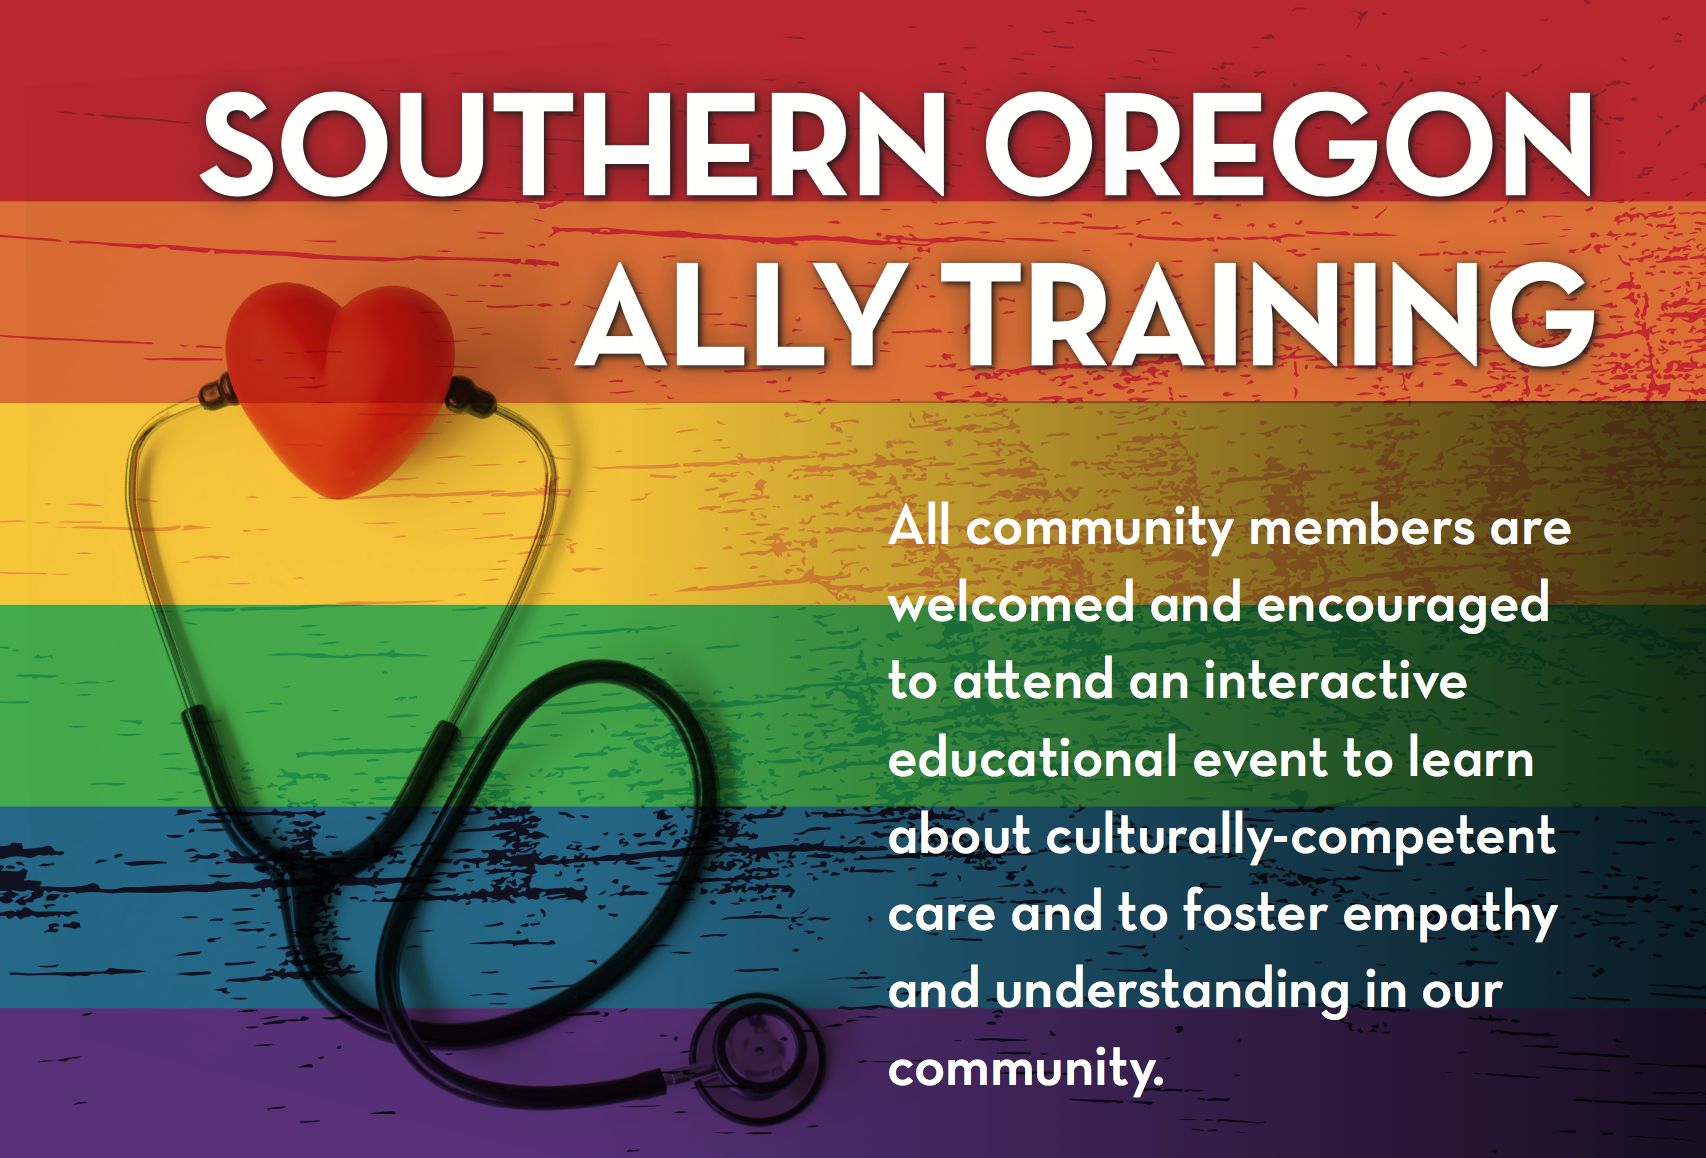 Southern Oregon Ally Training